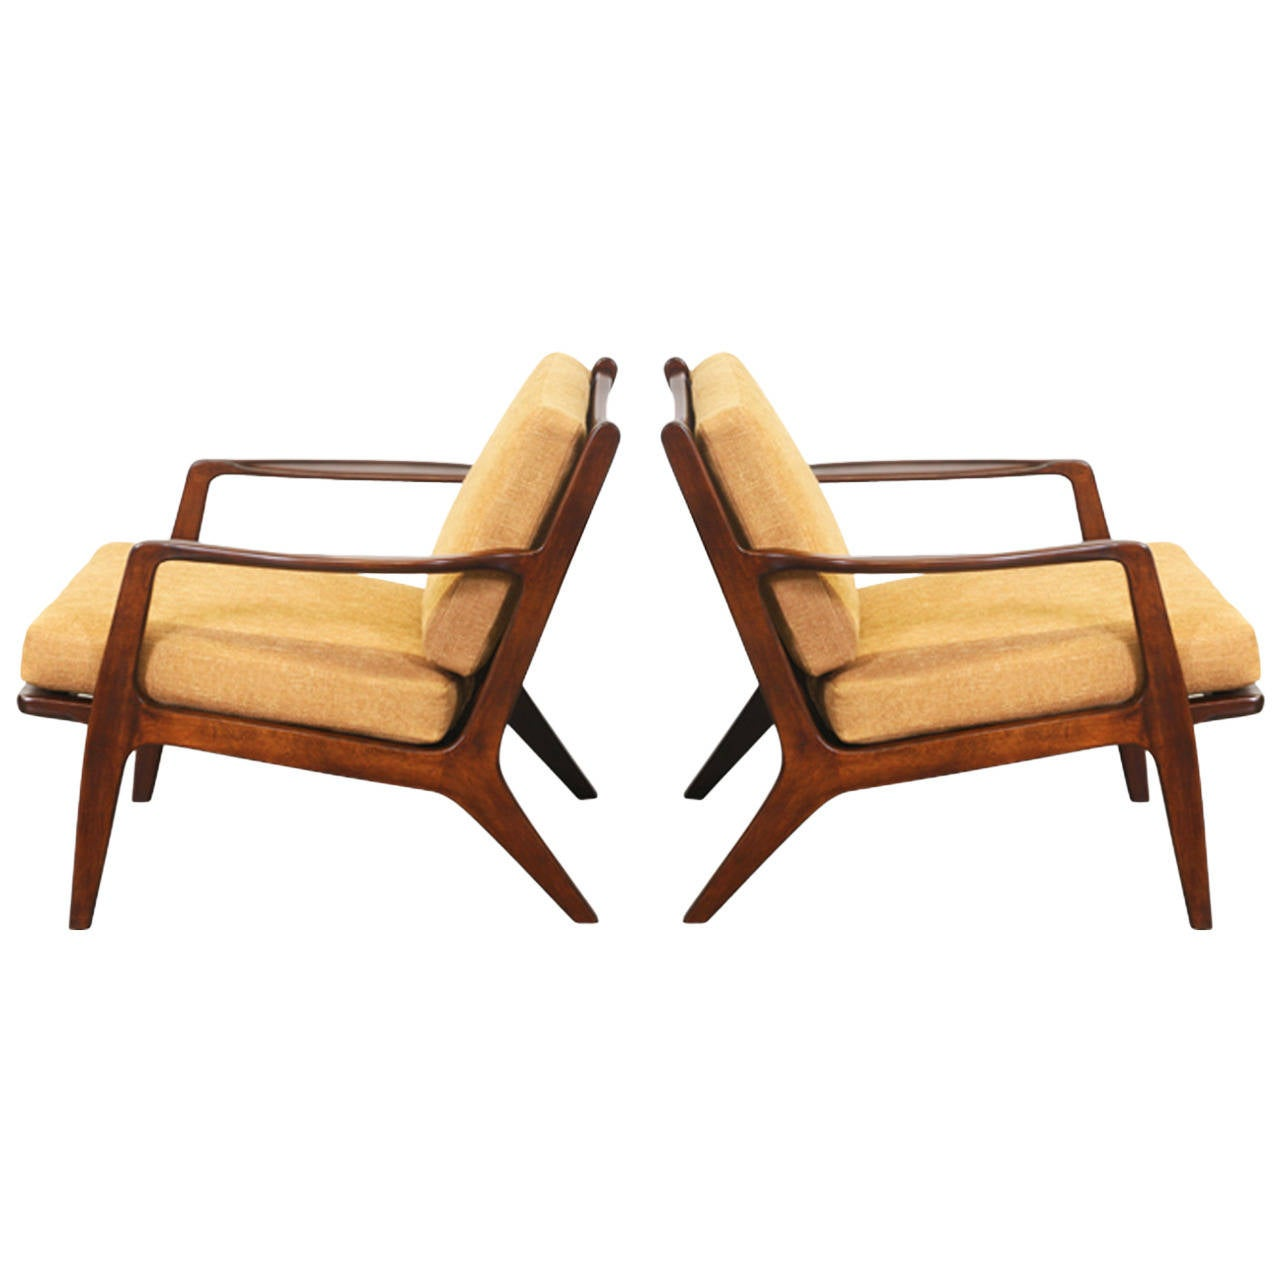 Kofod Larsen Lounge Chairs for Selig at 1stdibs